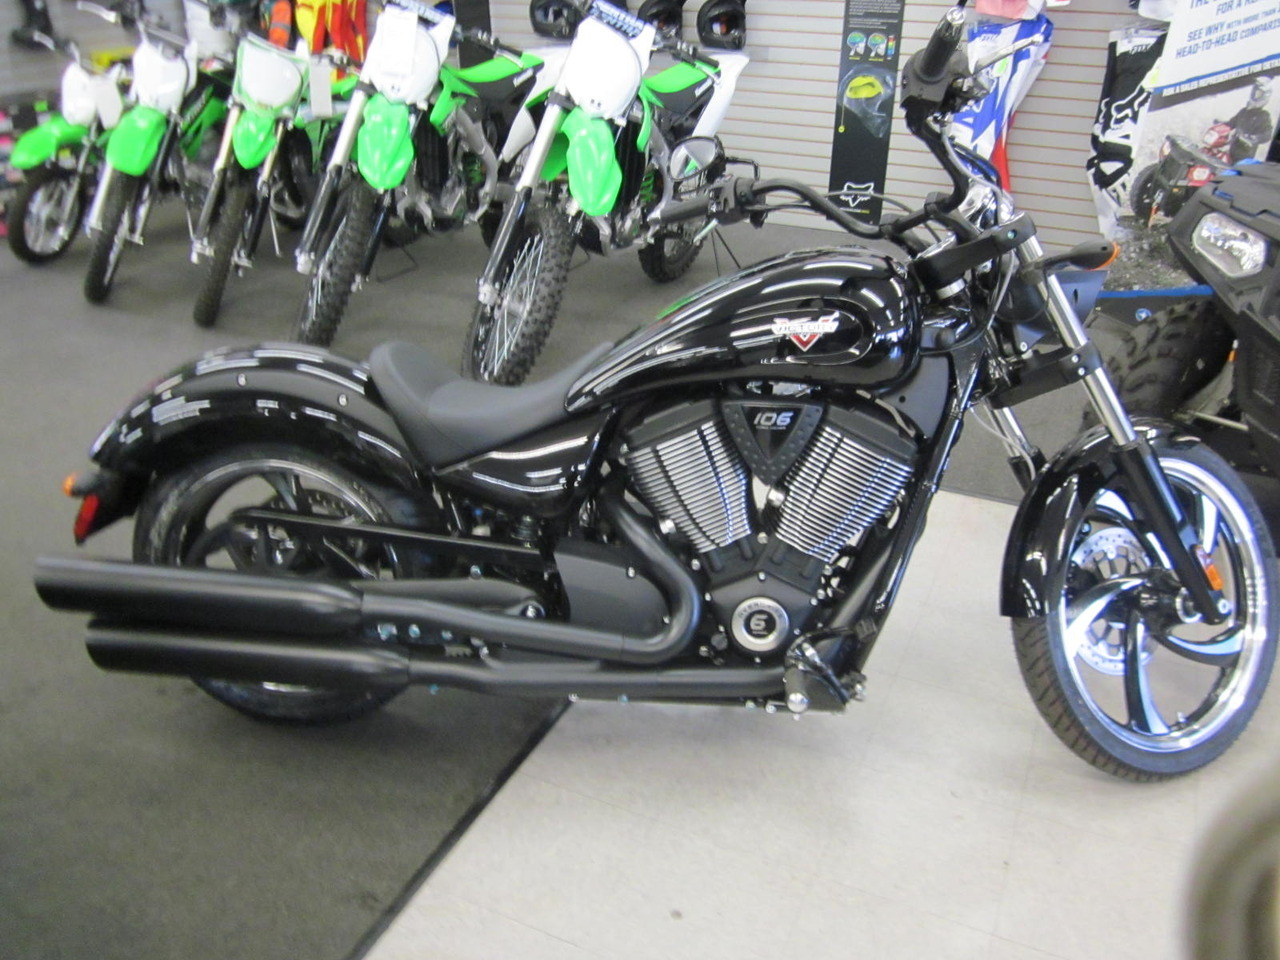 2015 Victory VEGAS 8 BALL, motorcycle listing